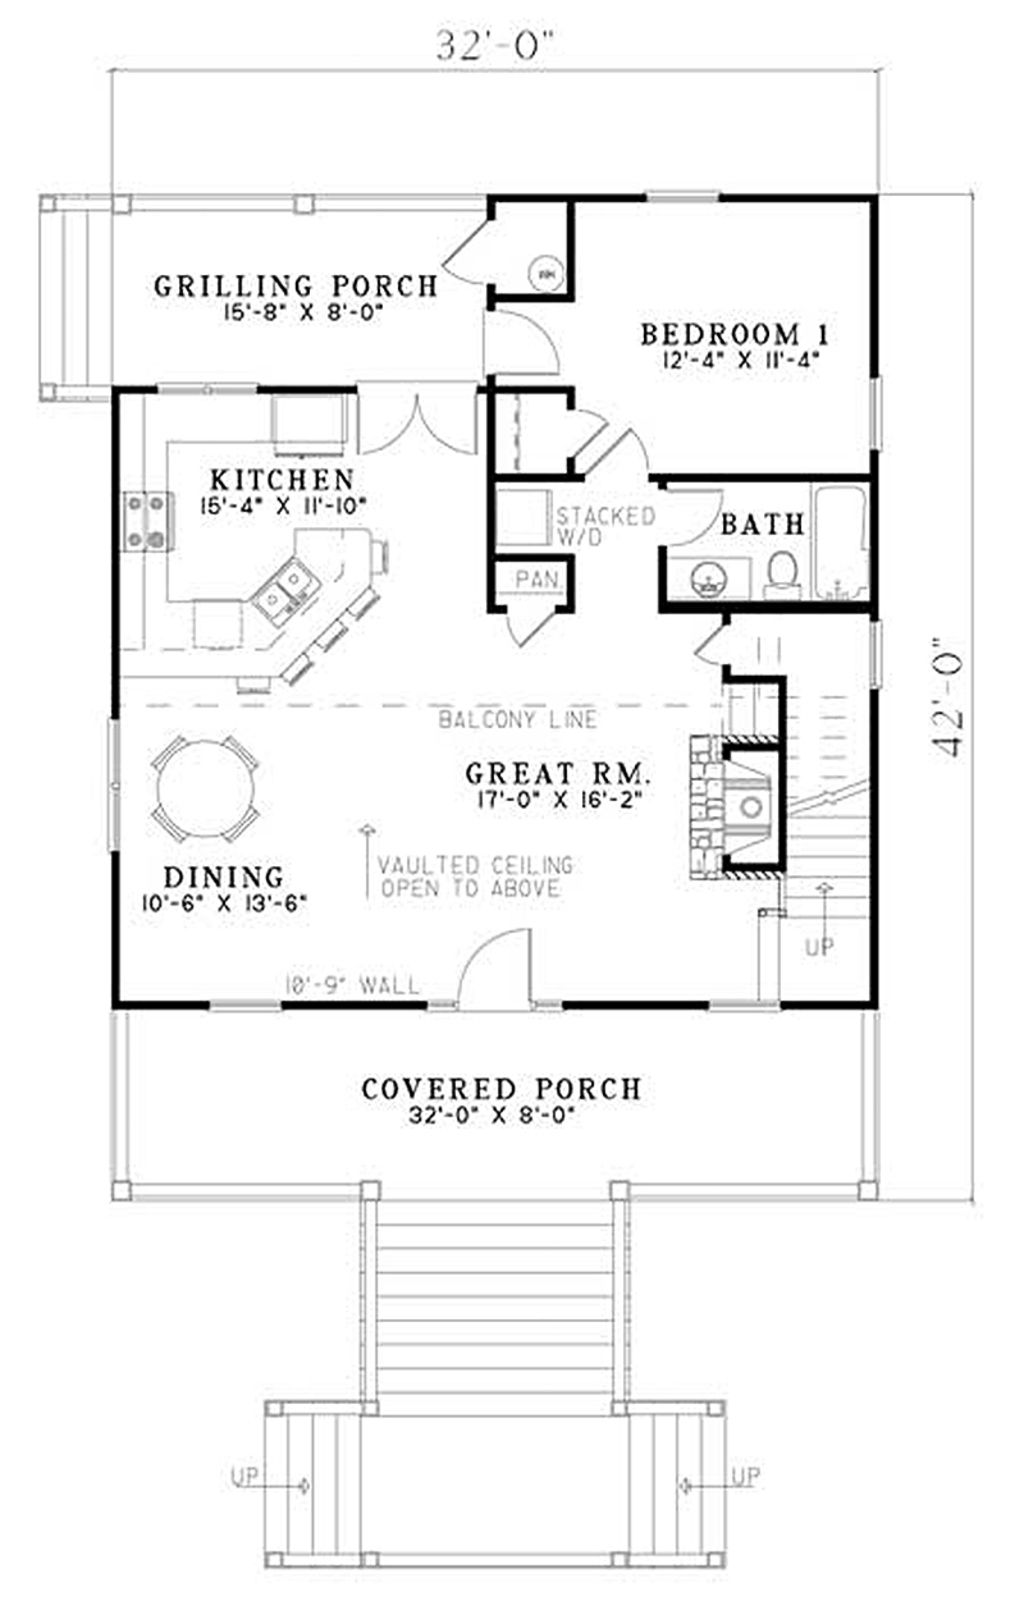 Cabin Style House Plan 2 Beds 2 Baths 1400 Sq/Ft Plan